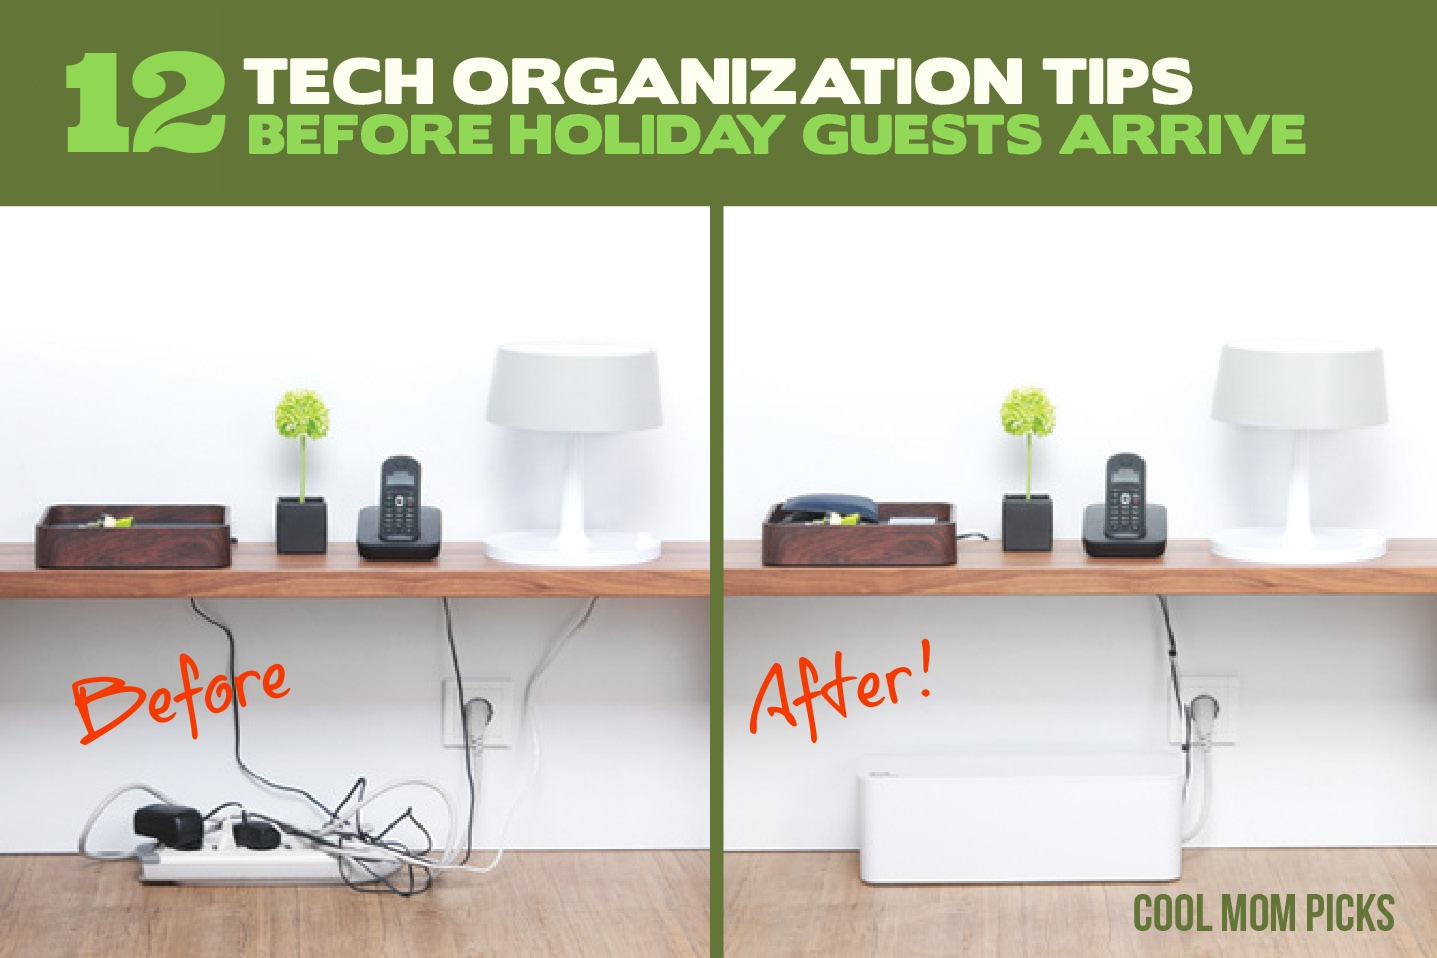 12 smart tech organization tips for the holidays. Get those homes ready! Mostly.